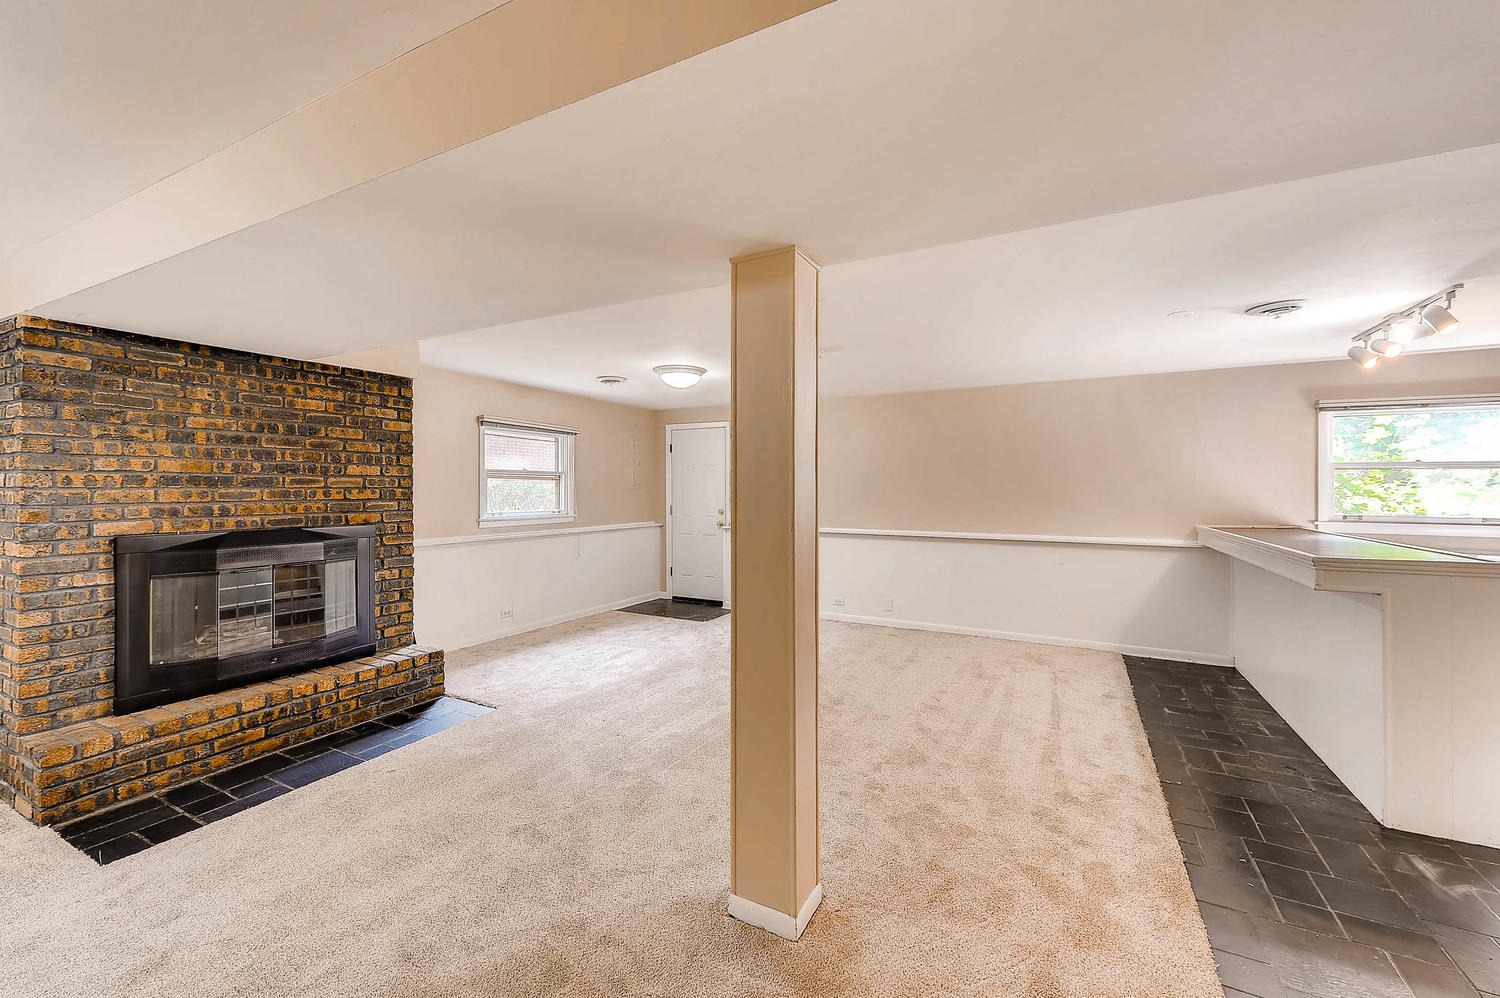 Photo of 2003 N Chestnut Ave., Arlington Heights, IL, 60004